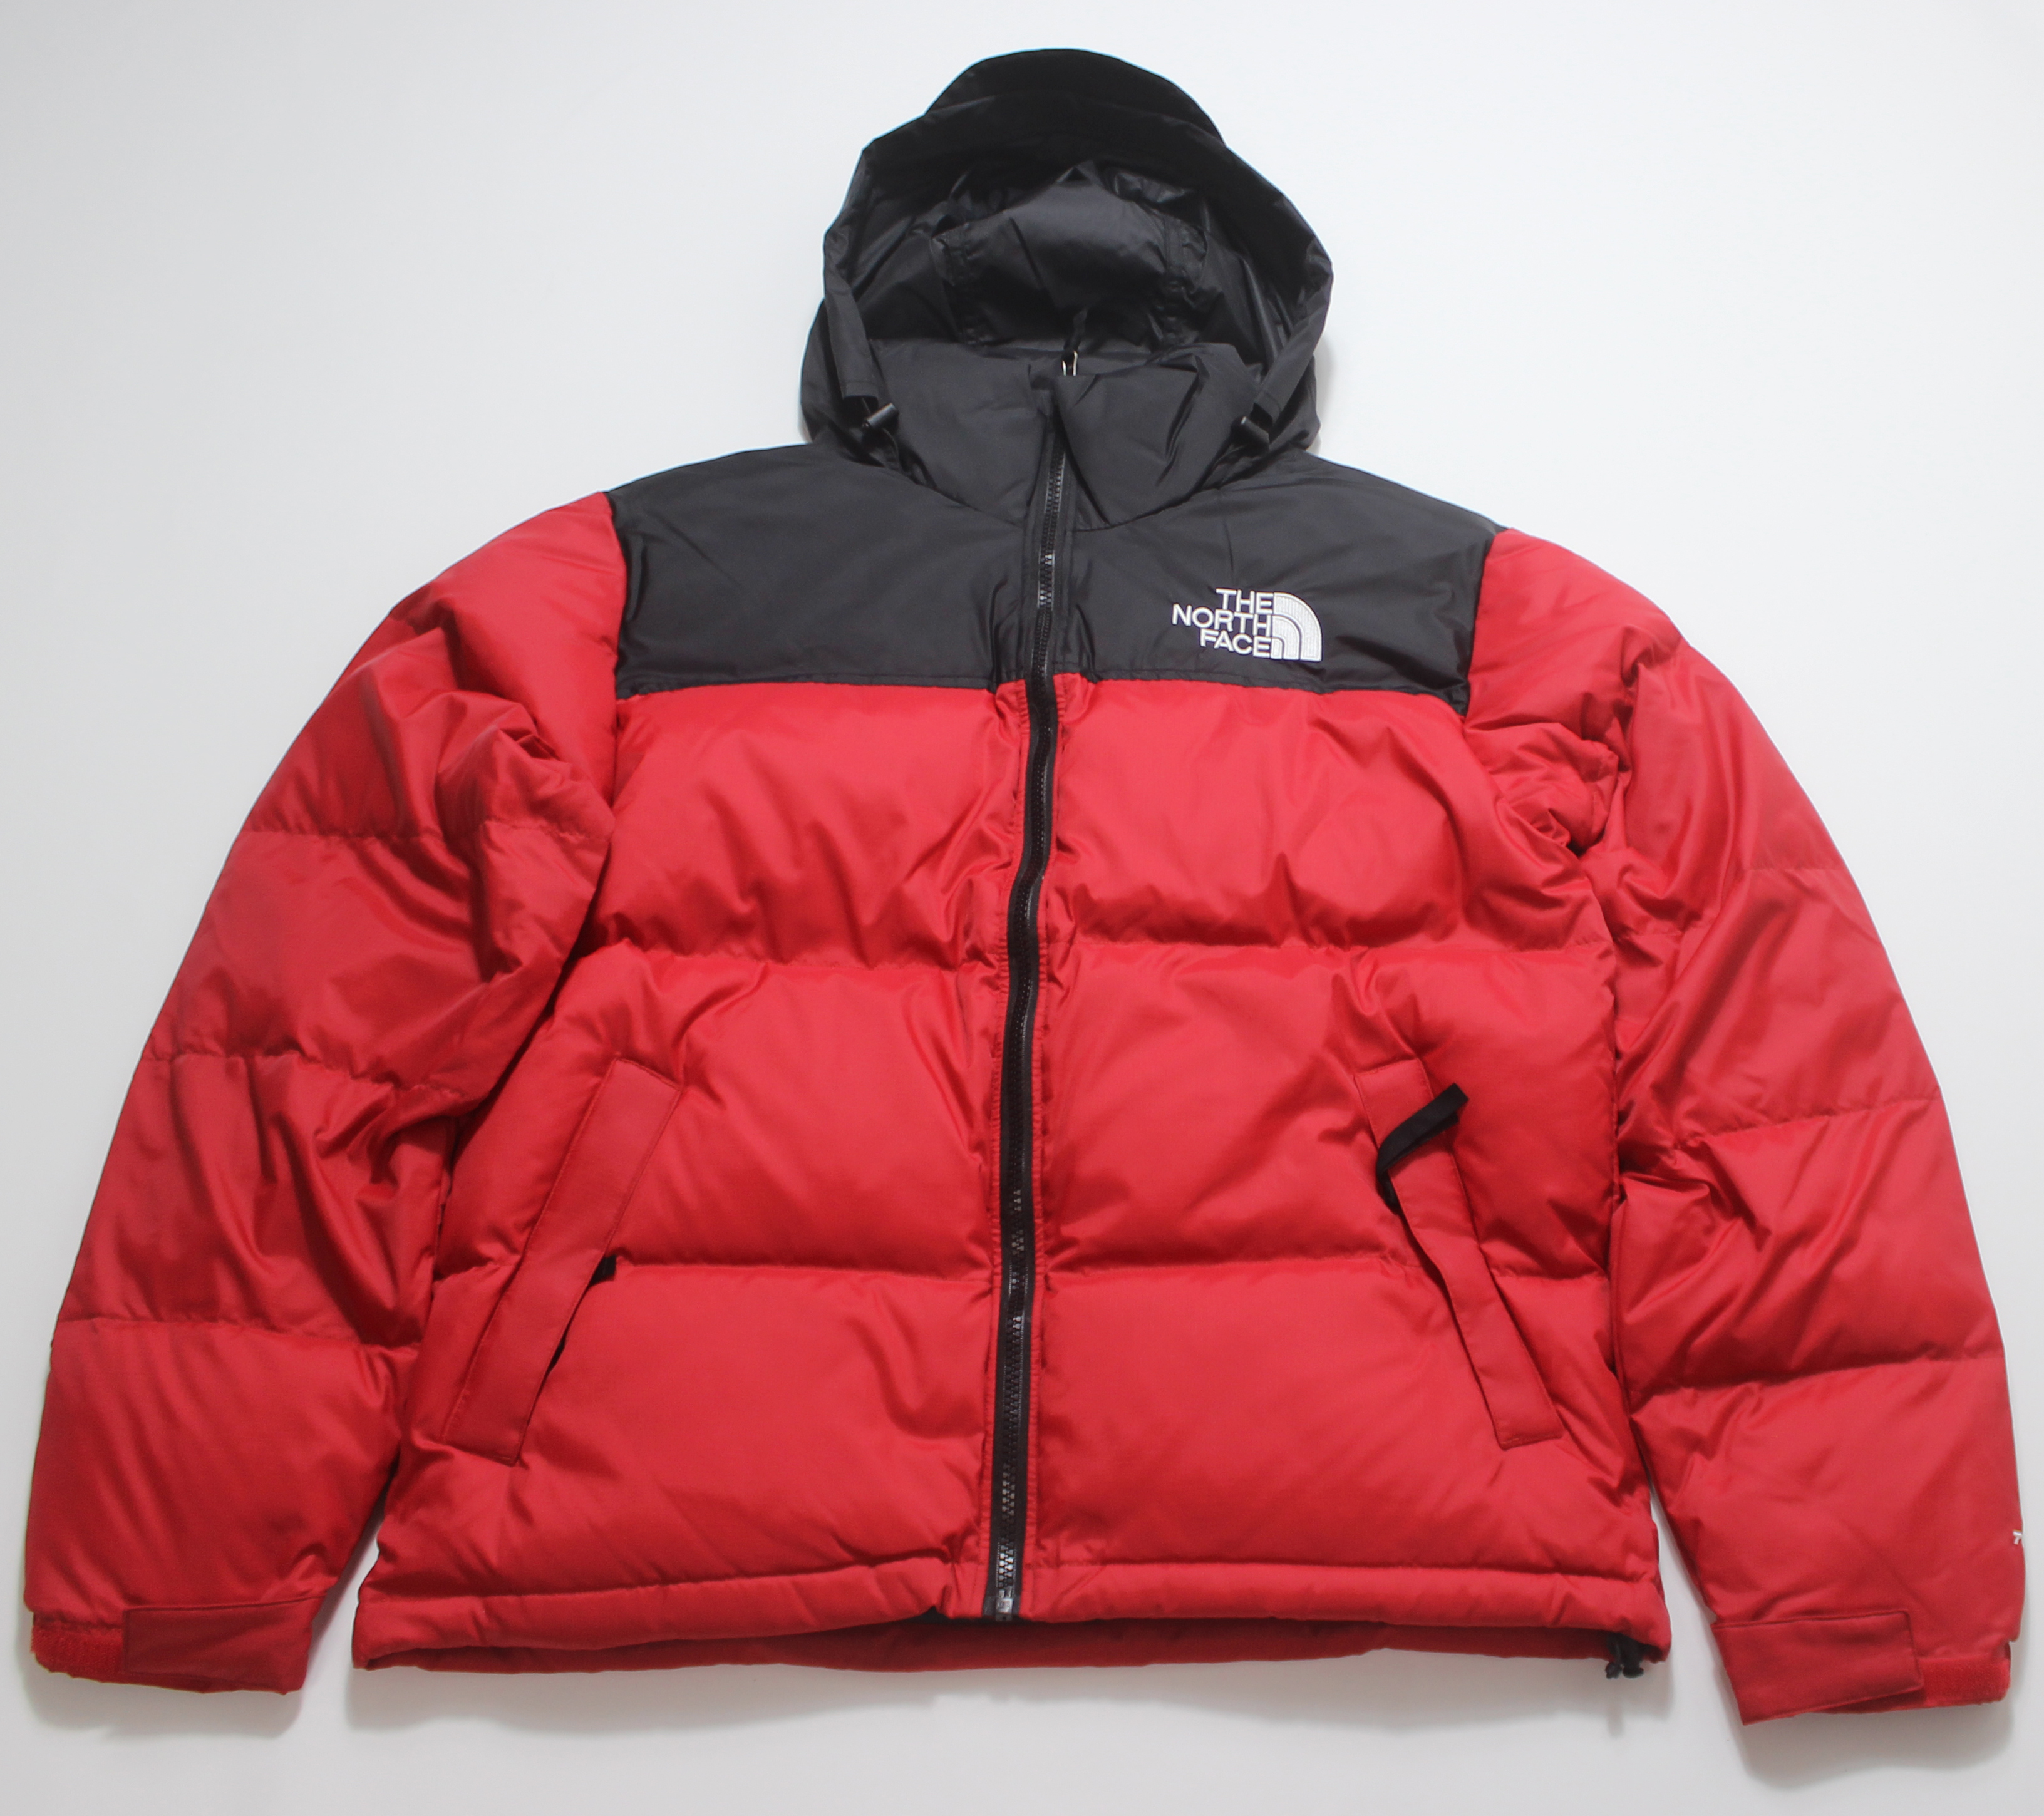 The North Face Men's Outwear 396